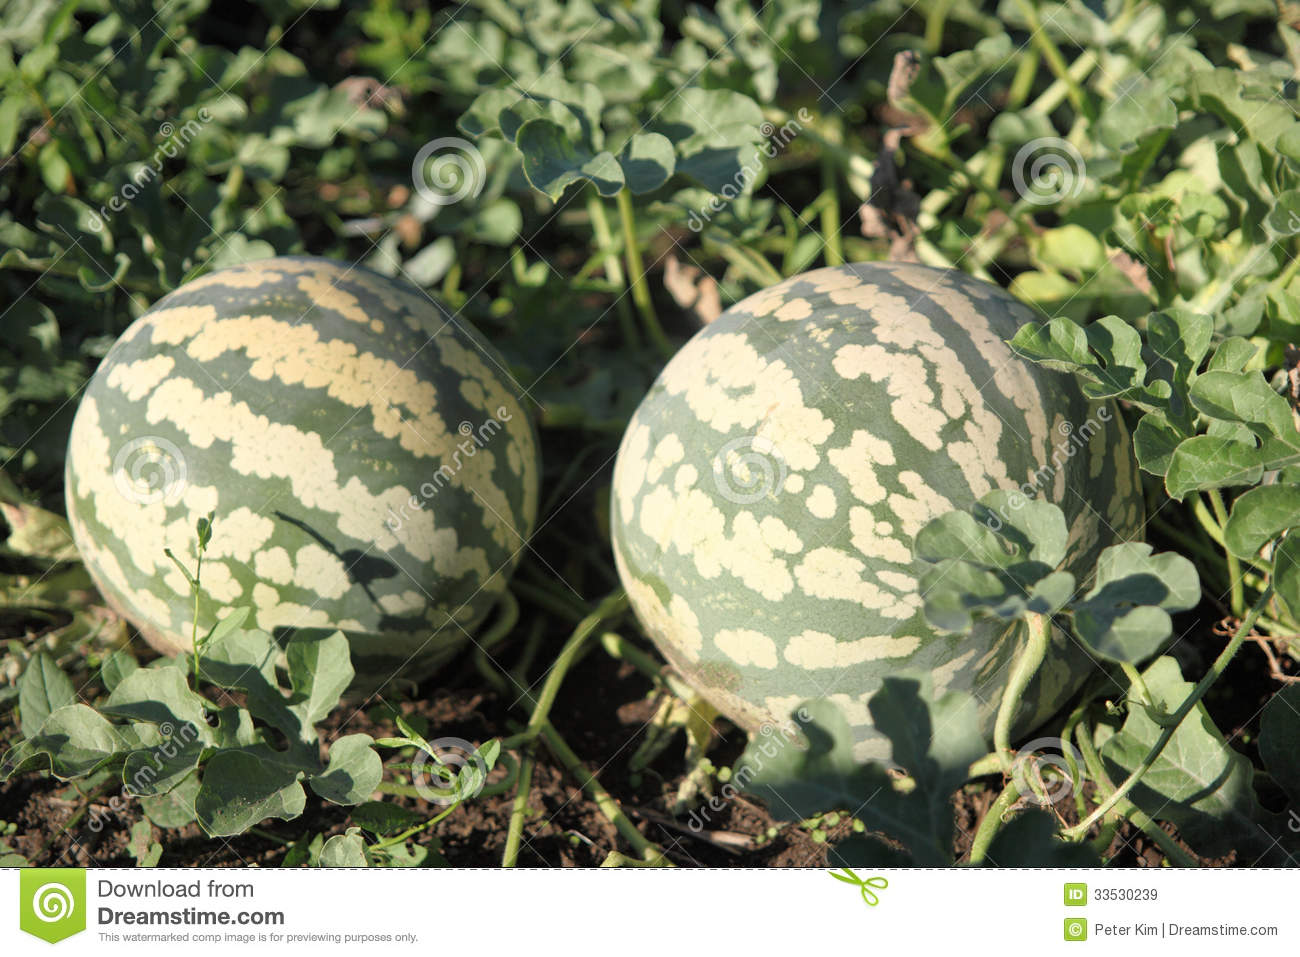 Watermelons growing on the vine in a garden Watermelons On The Vine